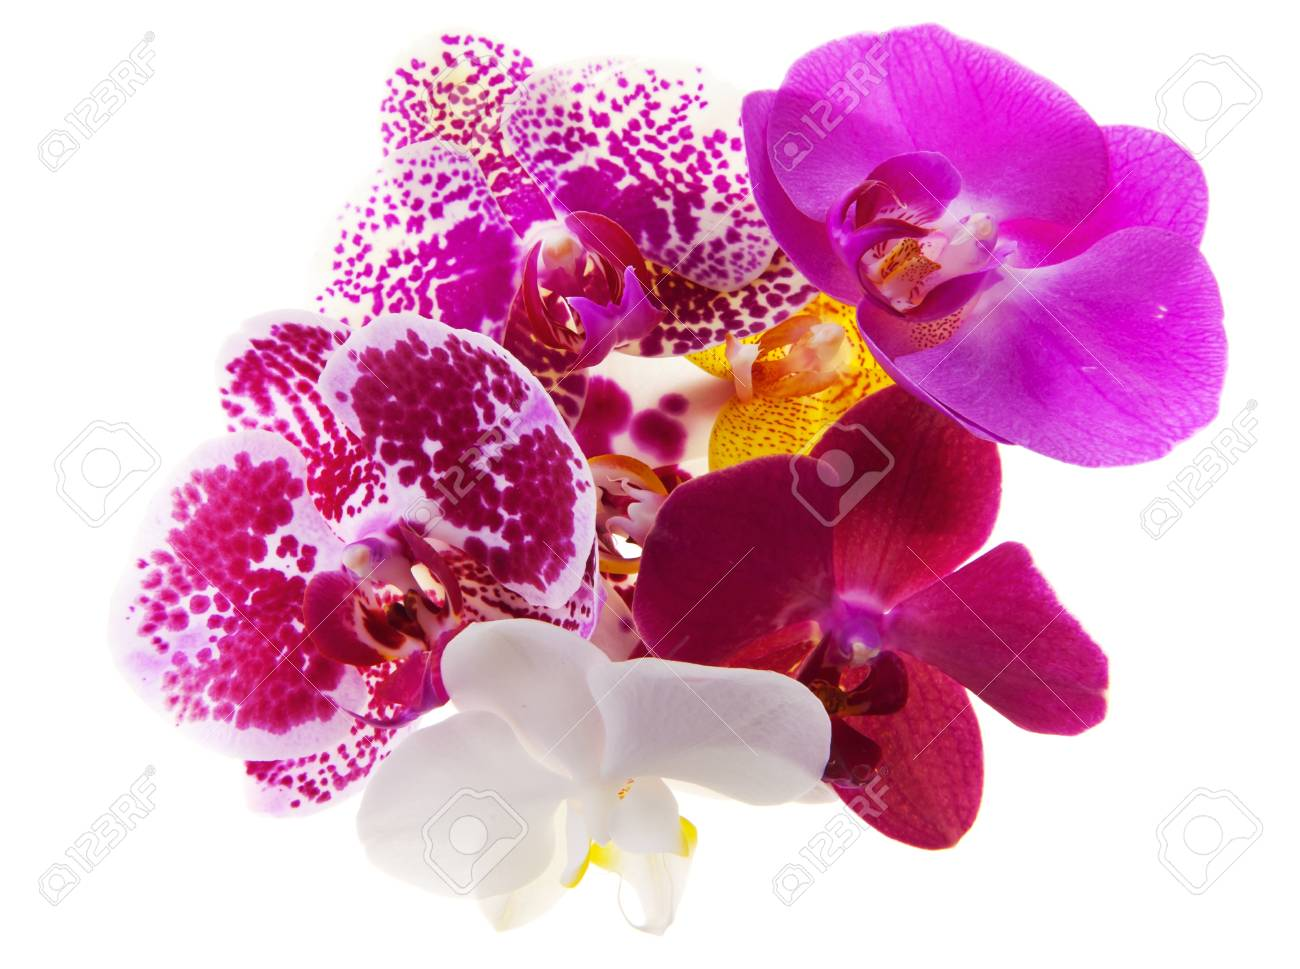 Heap of 7 various phalaenopsis orchid blooms Stock Photo - 11095235